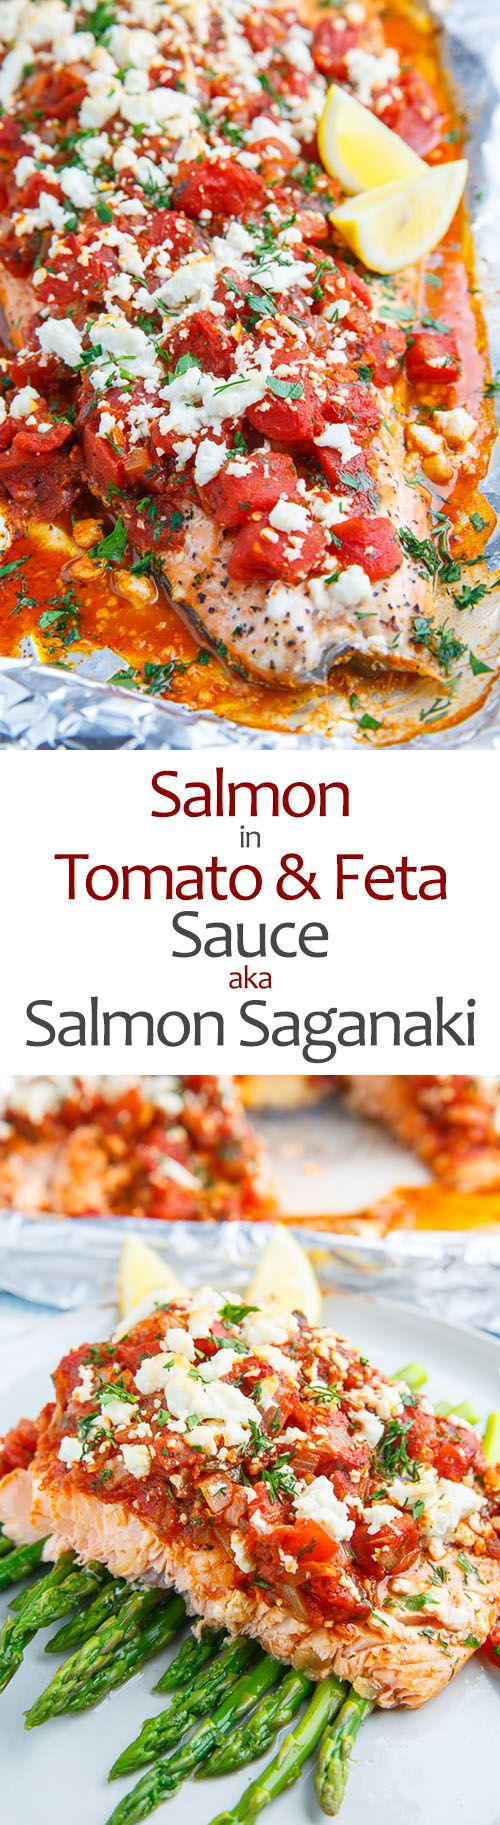 Salmon in a Tomato and Feta Sauce (aka Salmon Saganaki)                                                                                                                                                      More